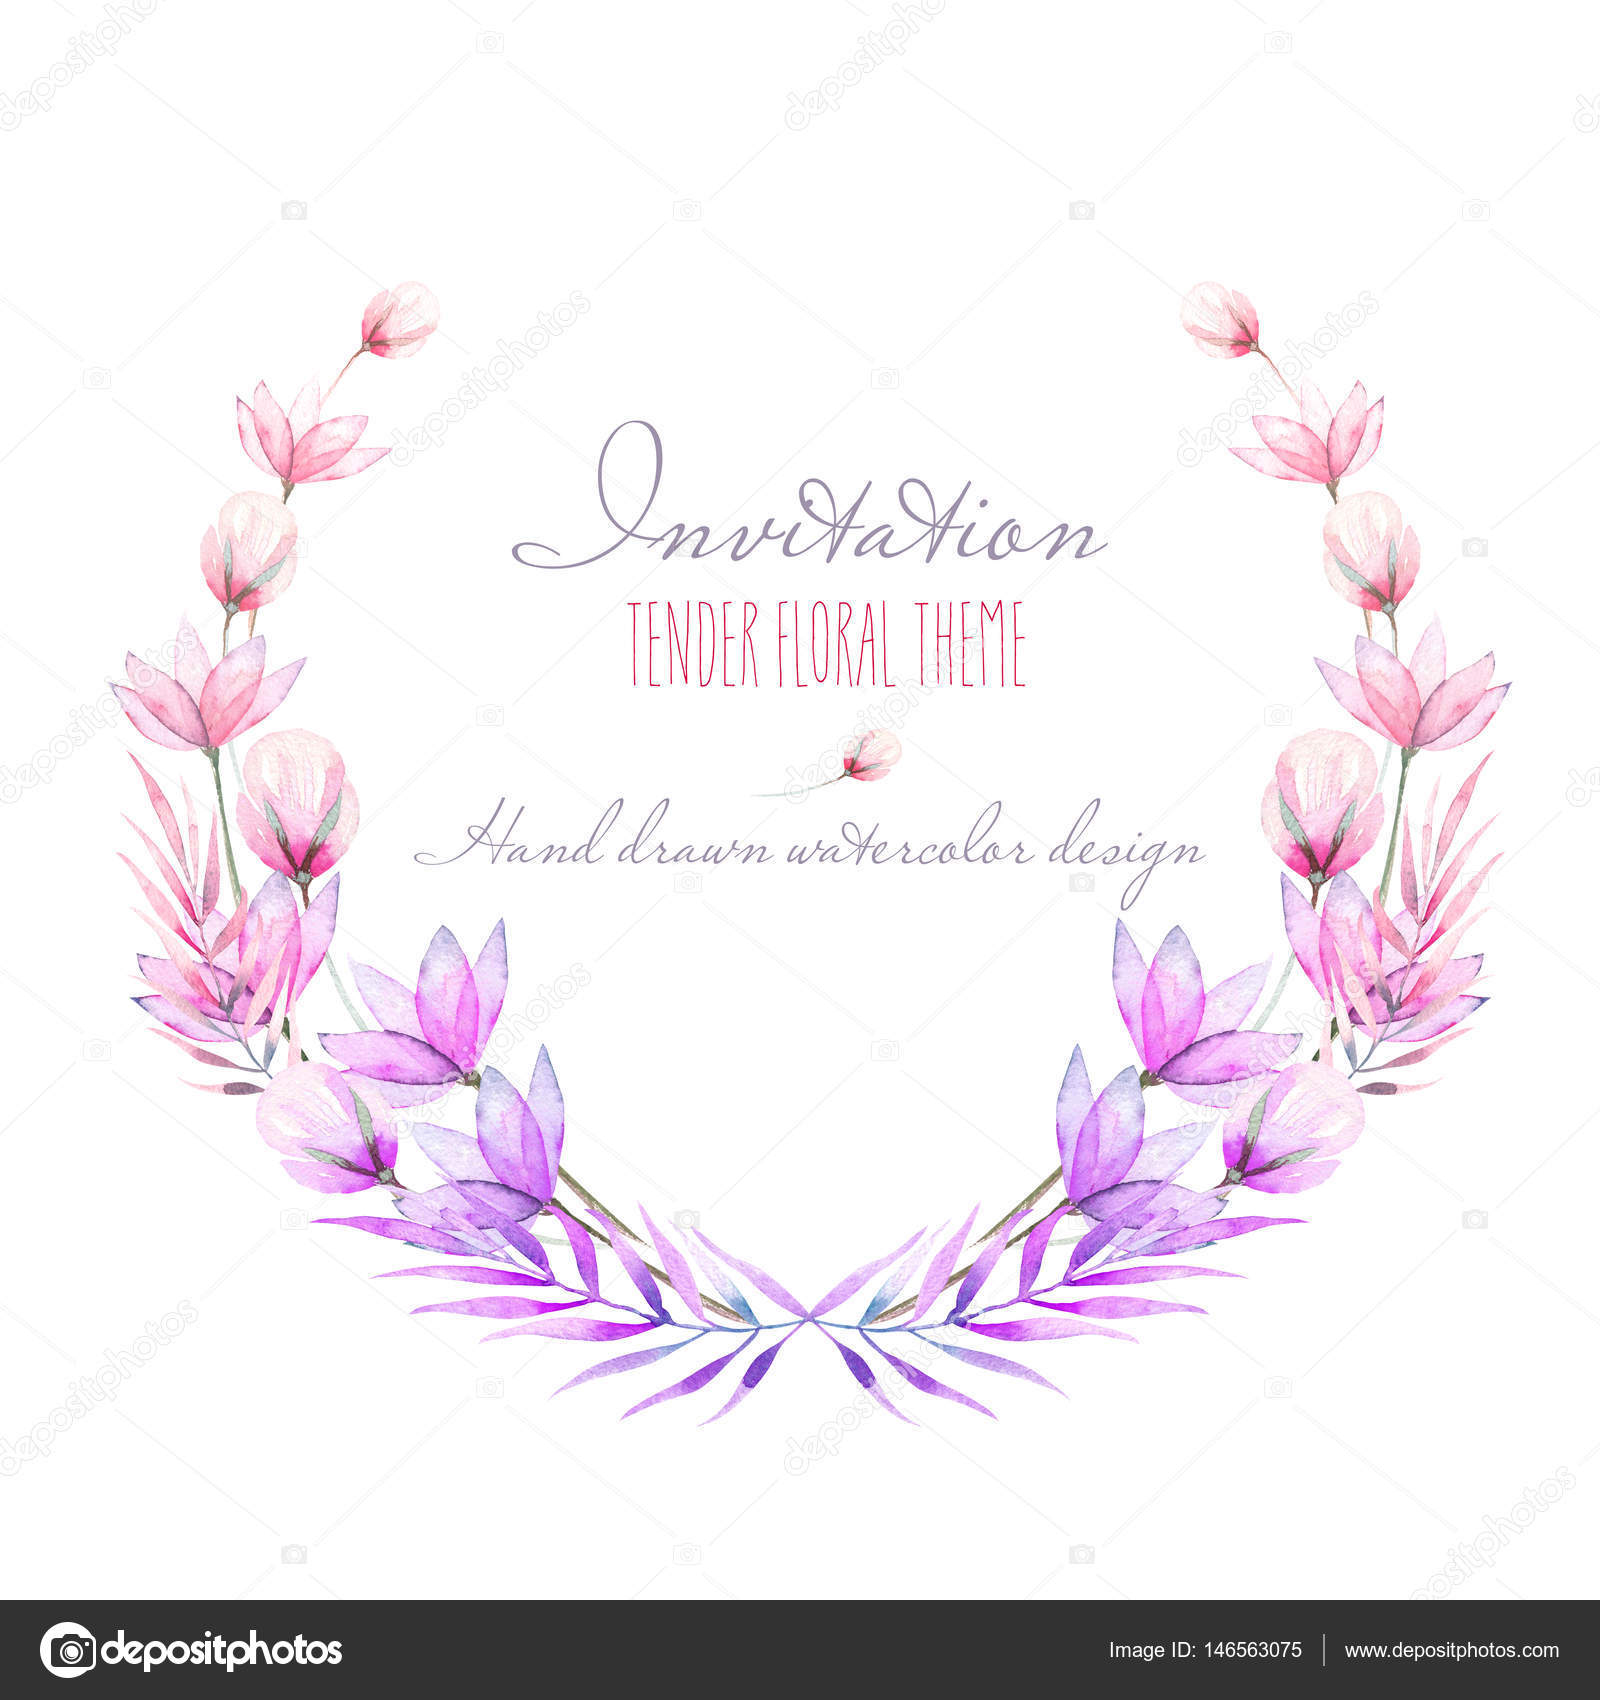 Circle Frame Border Wreath With Watercolor Tender Flowers And Leaves In Purple Pink